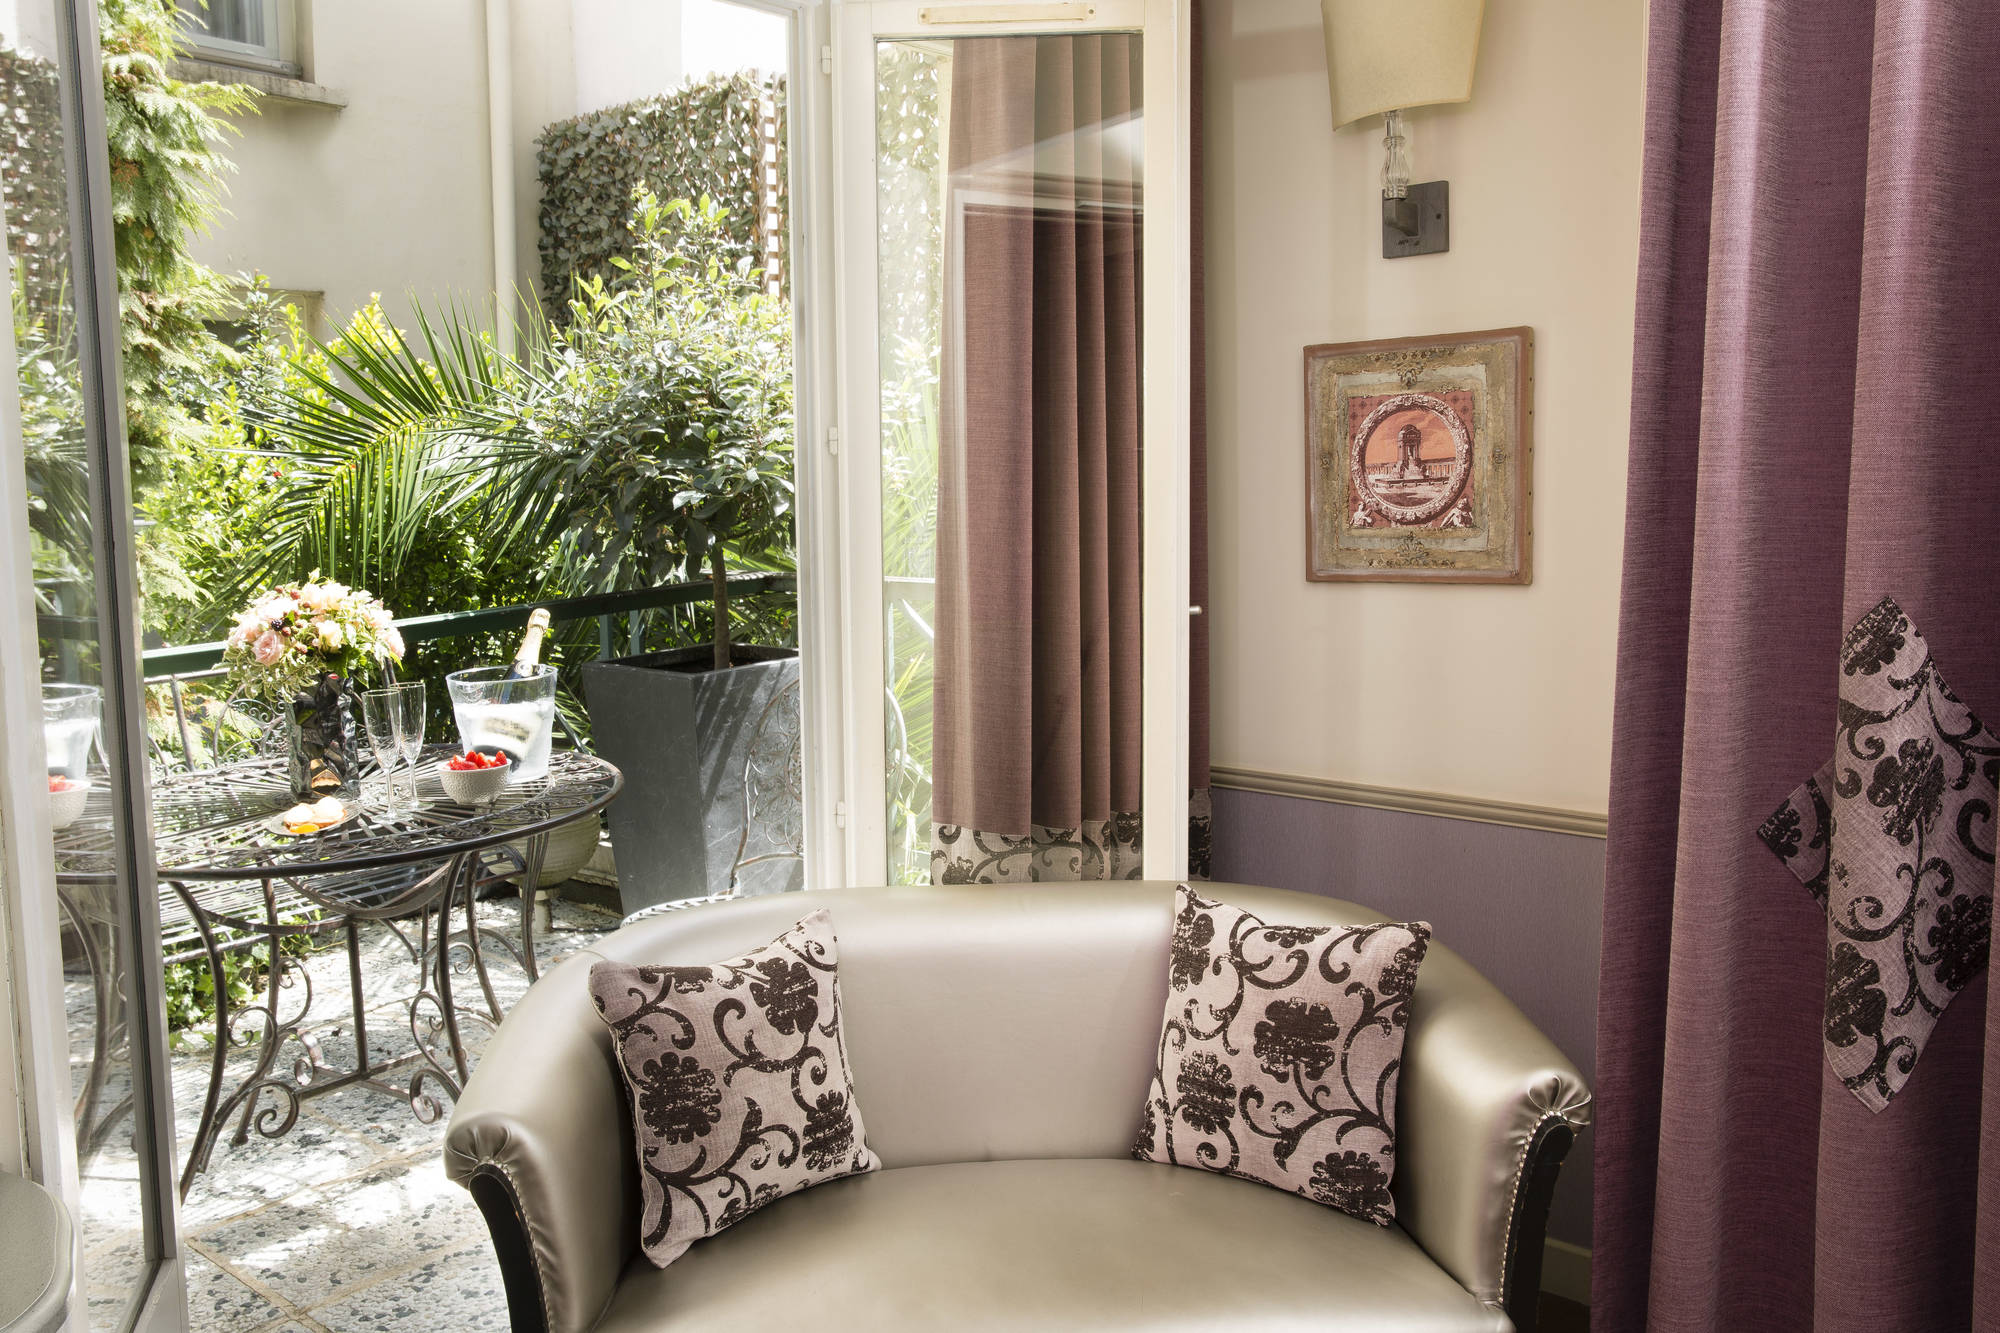 429/Photos/Chambres/Terrasse-deluxe/monceau-wagram-chambre-terrasse-deluxe-12.jpg